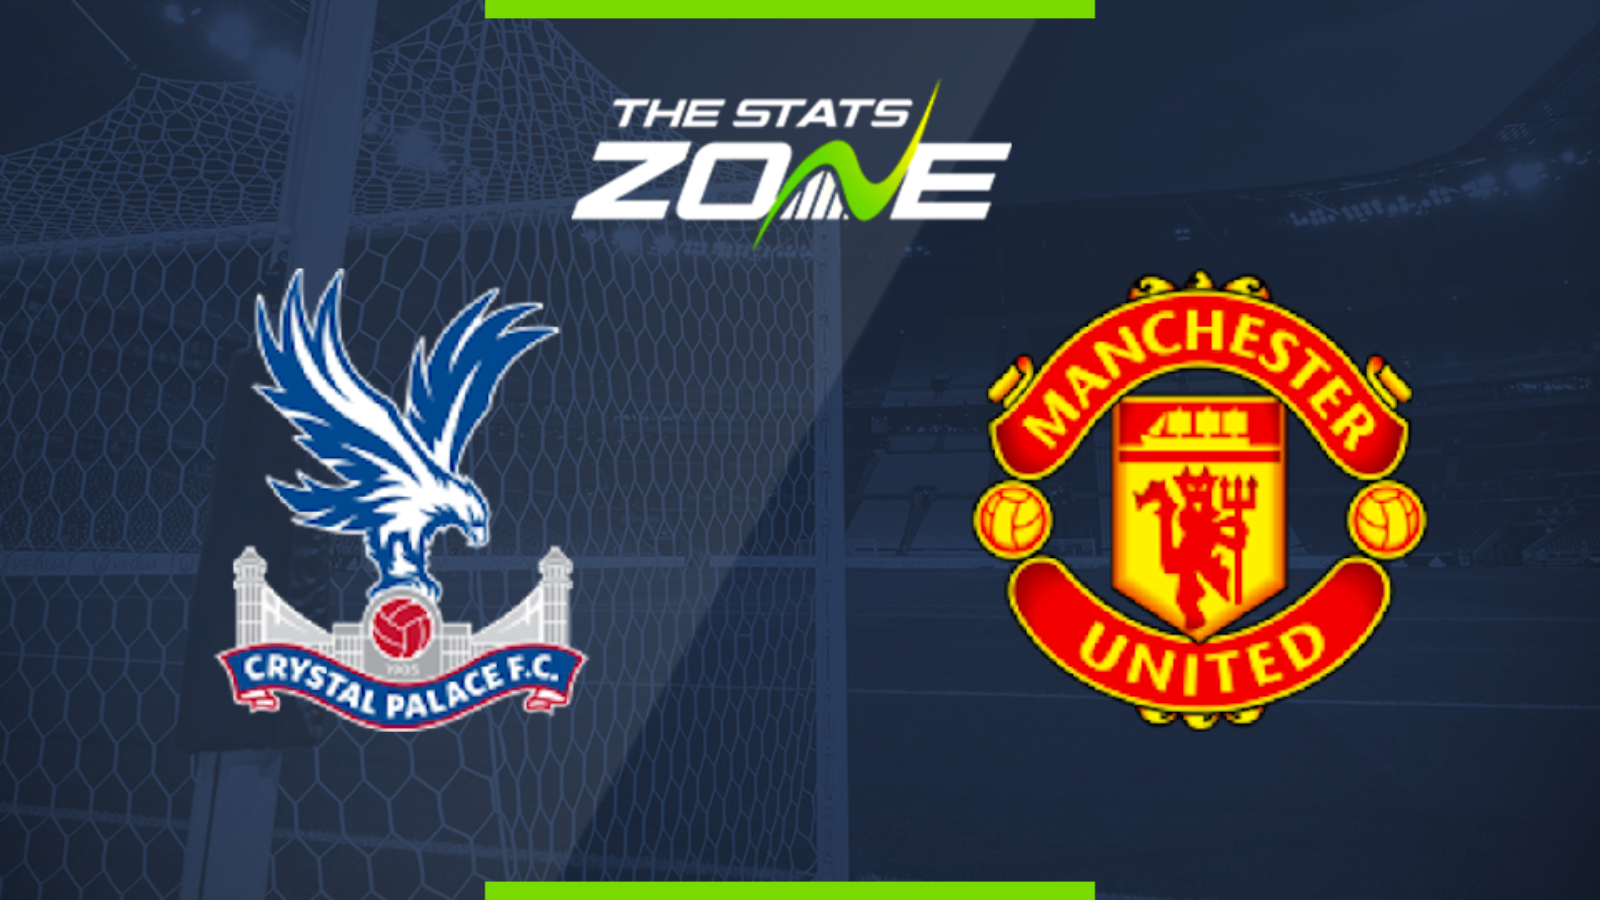 2019 20 Premier League Crystal Palace Vs Man Utd Preview Prediction The Stats Zone